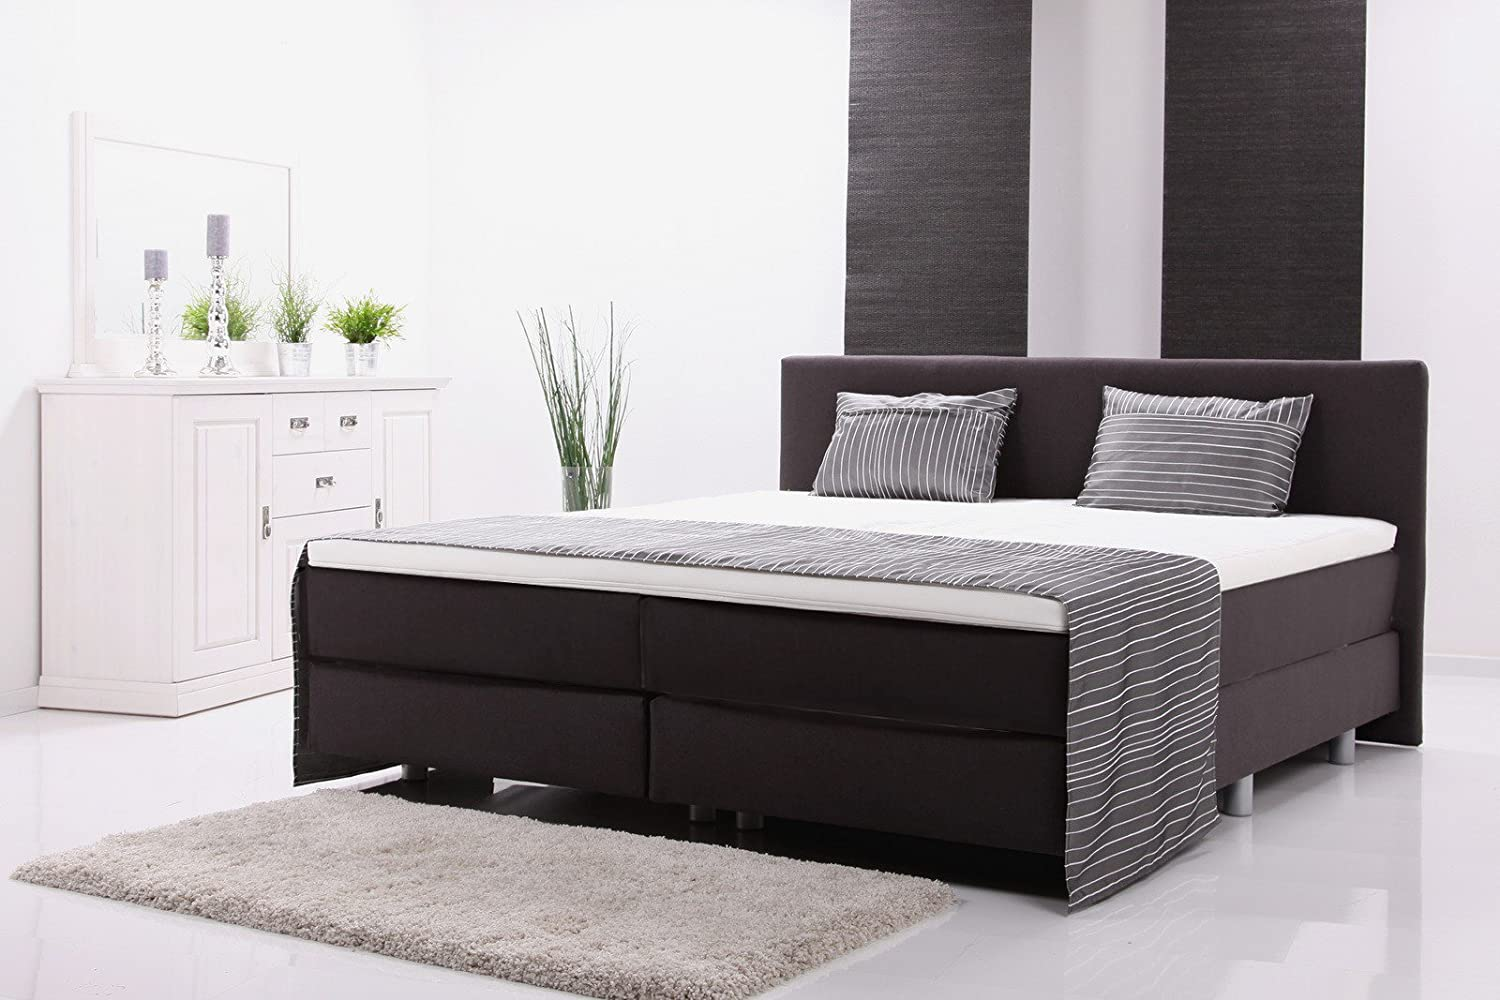 boxspringbett hotelbett polsterbett 200x200cm h rtegrad 3. Black Bedroom Furniture Sets. Home Design Ideas